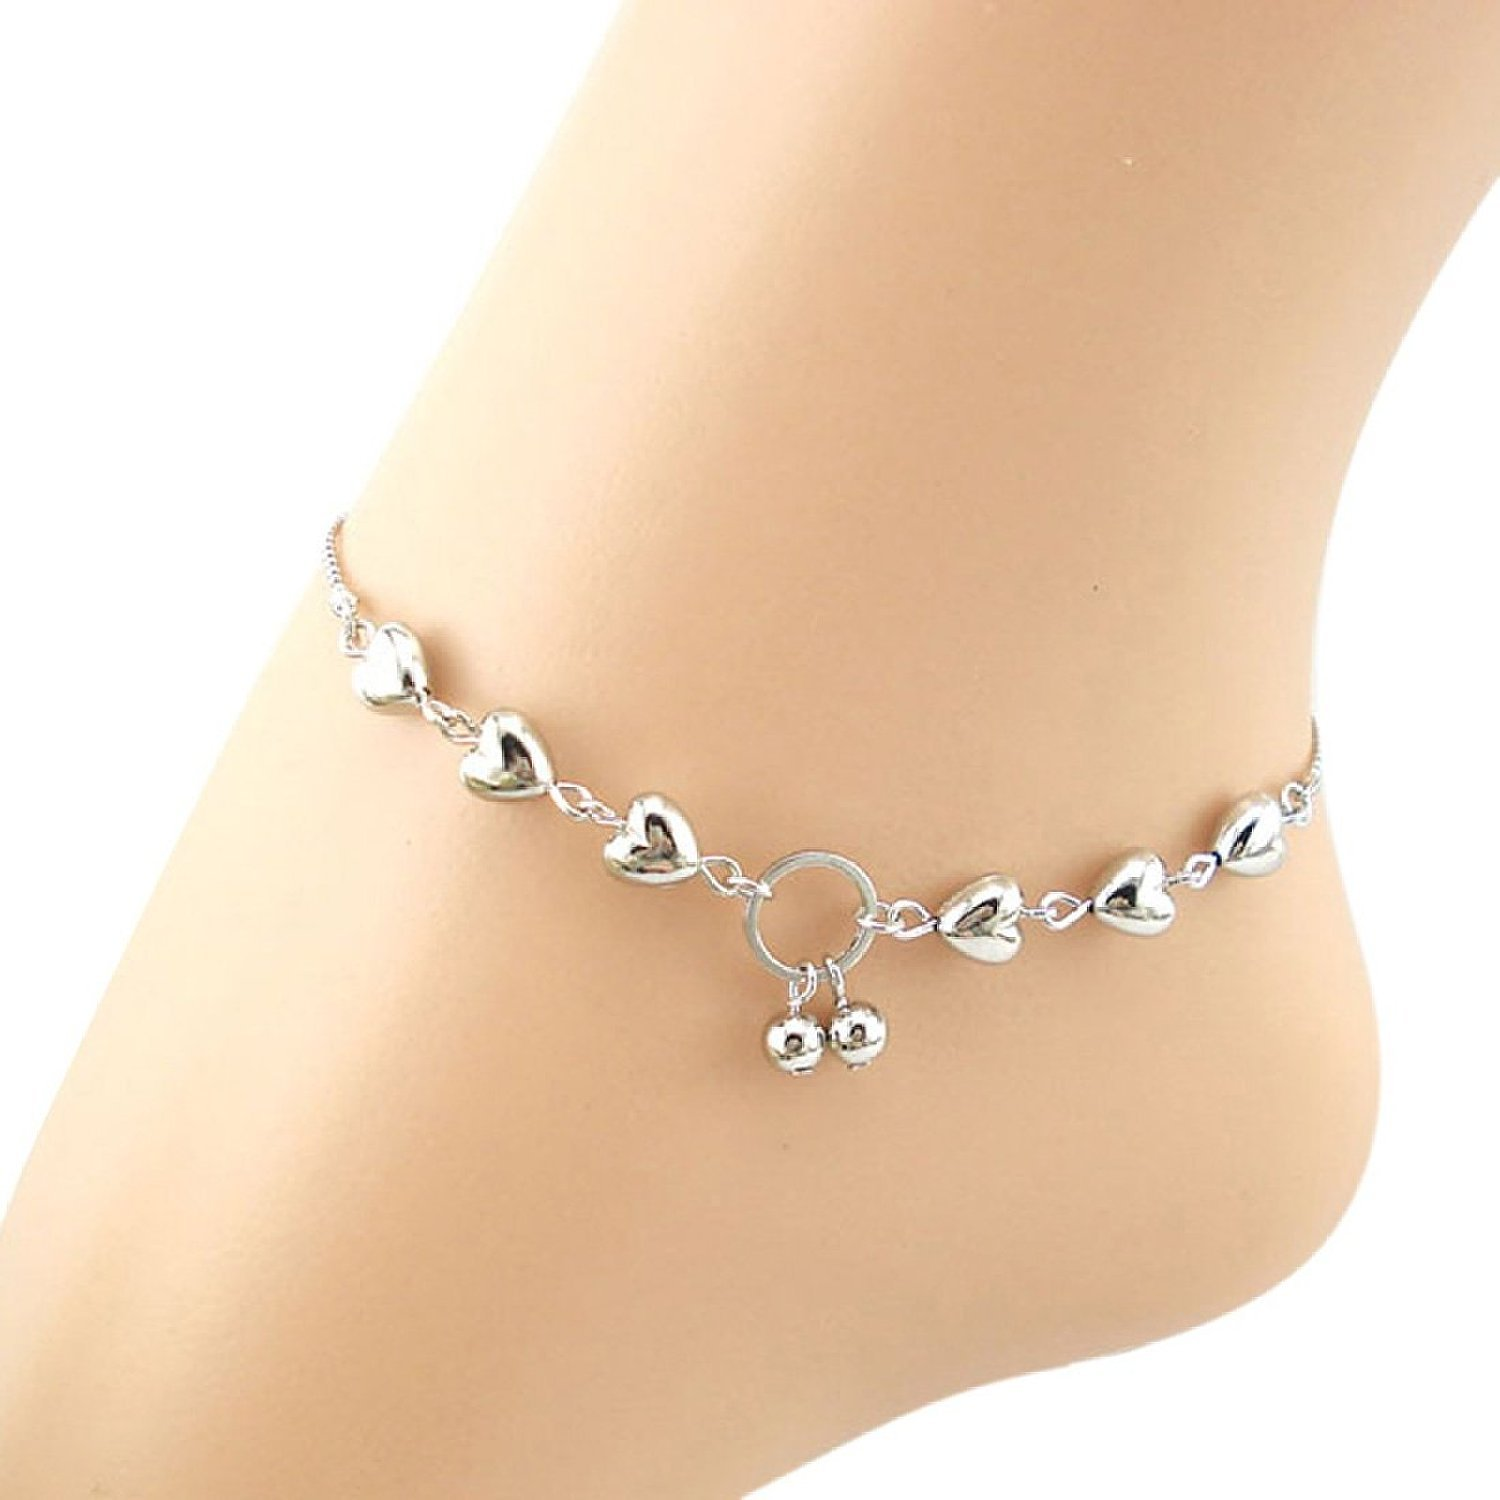 SODIAL(R) 1PC Stylish Silver Double Heart Bead Jewelry Chain anklet bracelet Ankle Foot Beach 070411